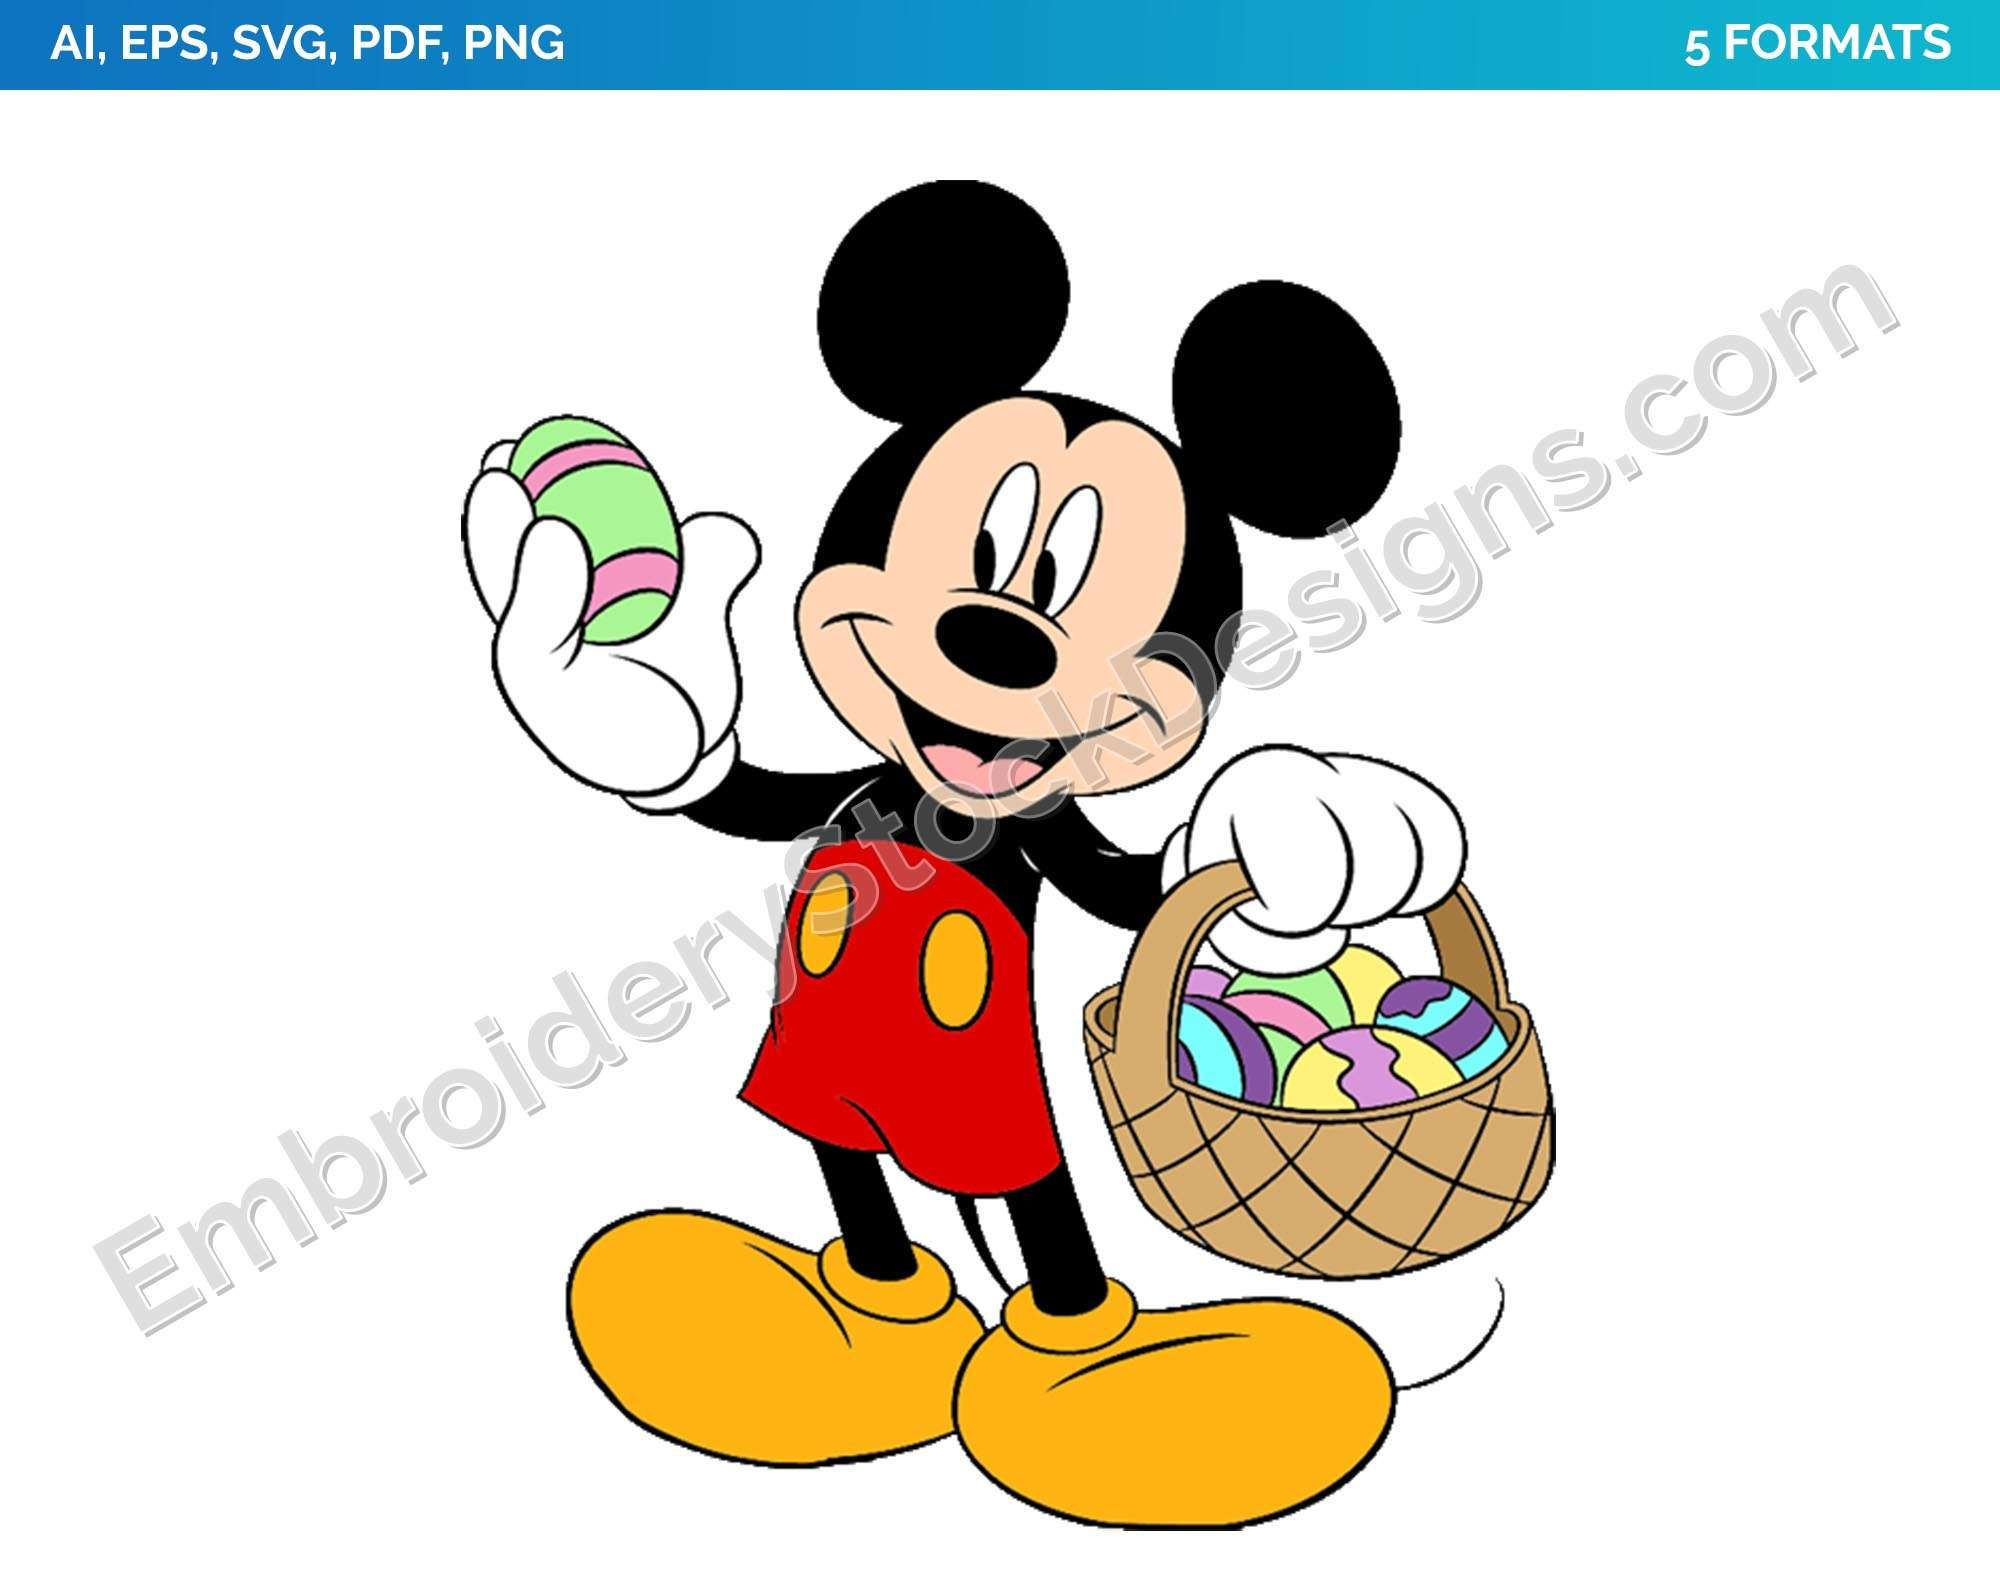 Mickey 7 Easter Holiday Disney Character Designs As Svg Vector For Print In 5 Formats Dsnyh000490 World S Largest Collection Of Embroidery Vector Prin Mickey Easter Mickey Mickey Mouse Art